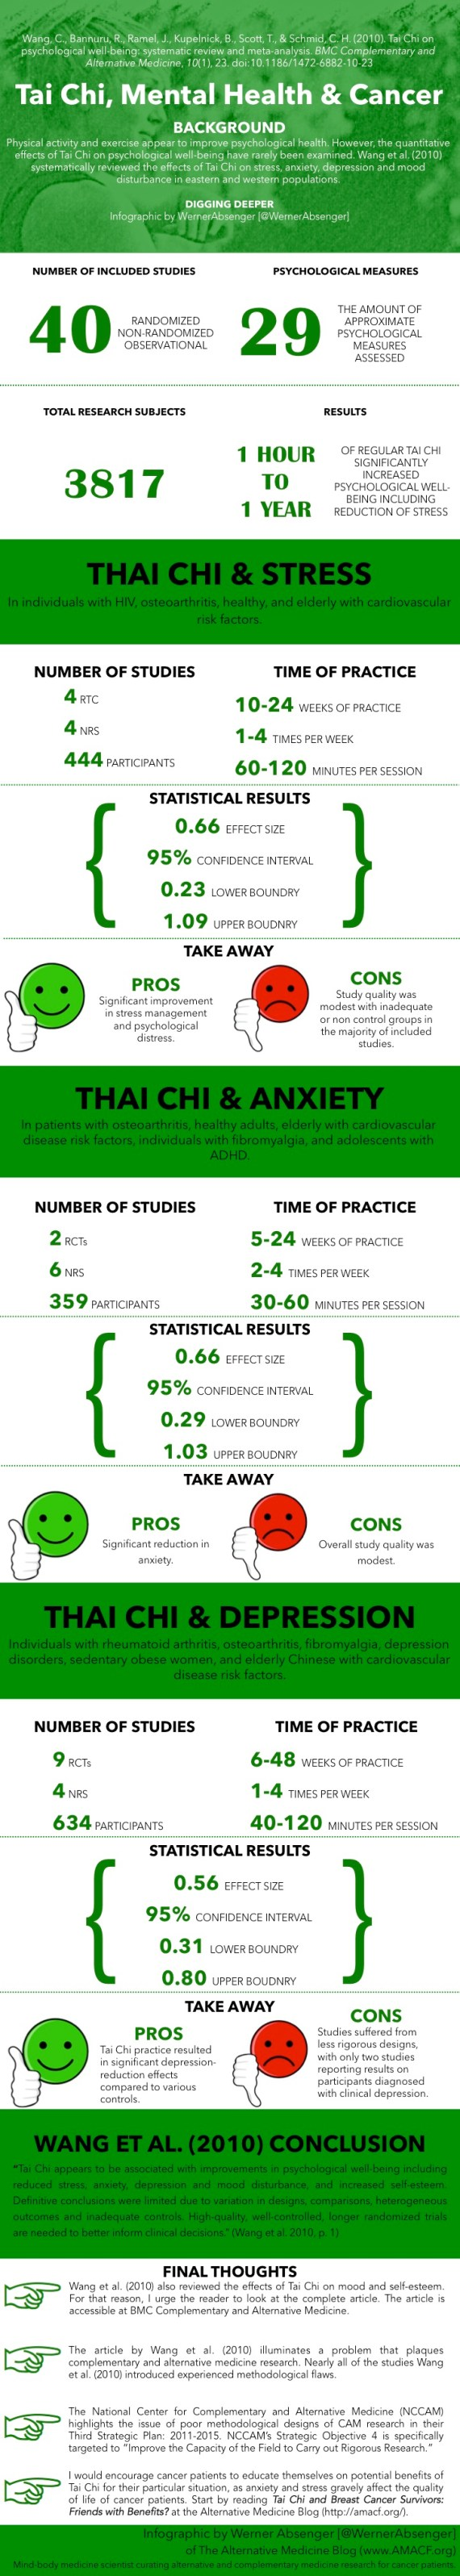 [Infographic] Tai Chi and Mental Health